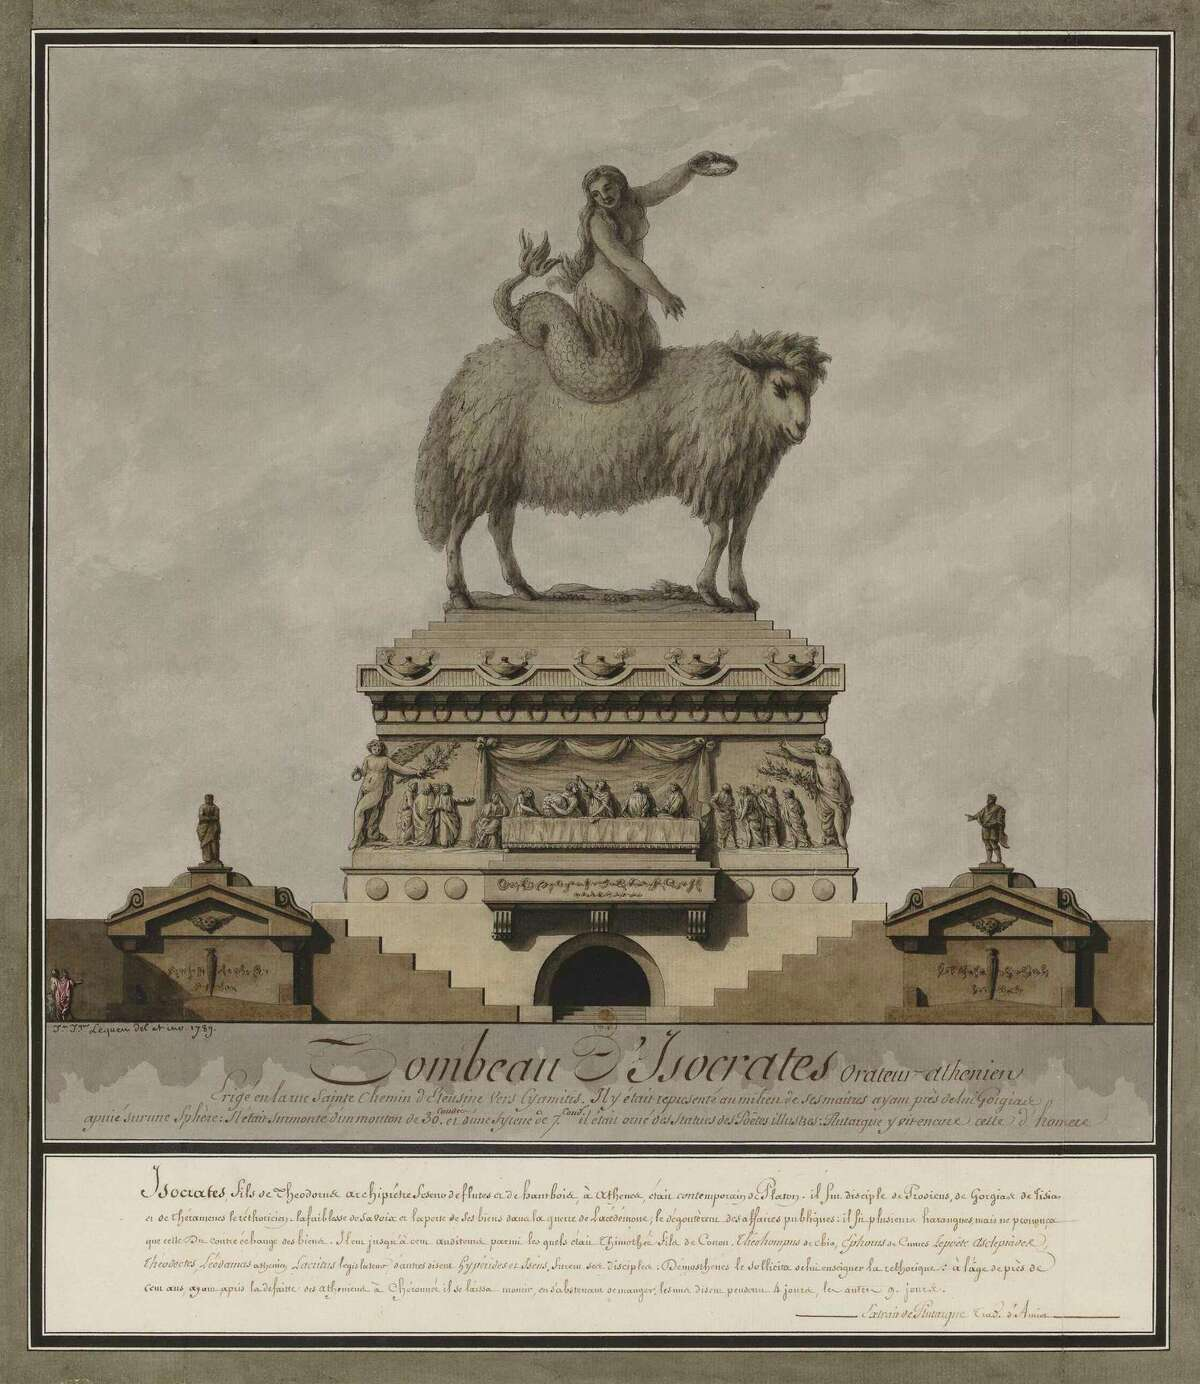 """""""The Tomb of Isocrates, Athenian Orator (Tombeau d'Isocrate, orateur athénien),"""" from 1789,, is among works on view Oct. 4-Jan. 5 at the Menil Drawing Institute in the show """"Jean-Jacques Lequeu: Visionary Architect, Drawings from theBibliothèque nationale de France."""""""